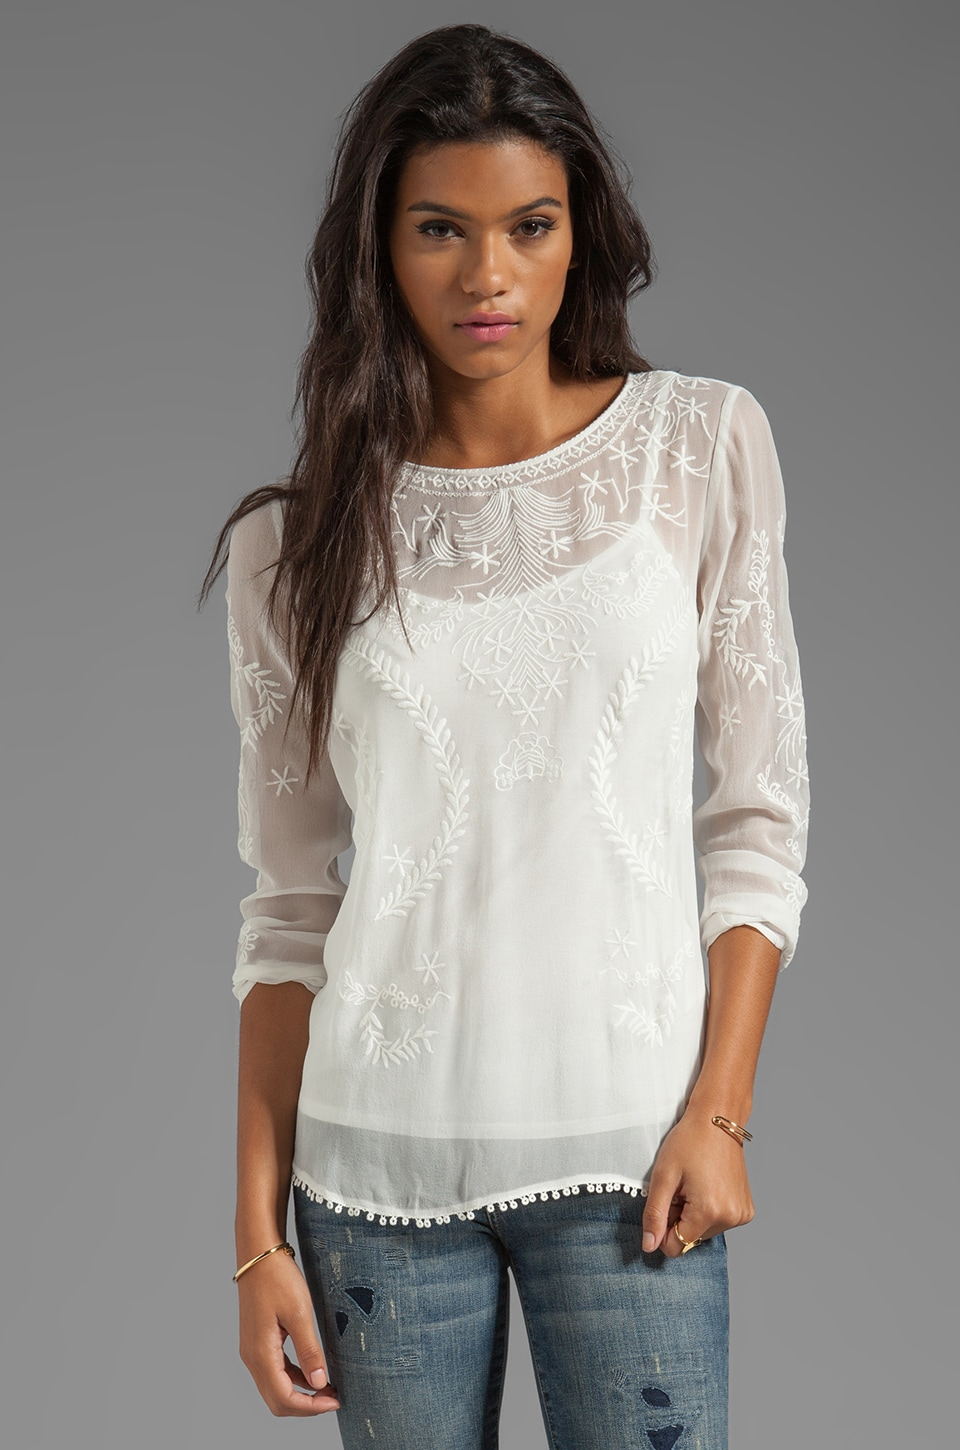 Ella Moss Tilly Long Sleeve Top in Natural